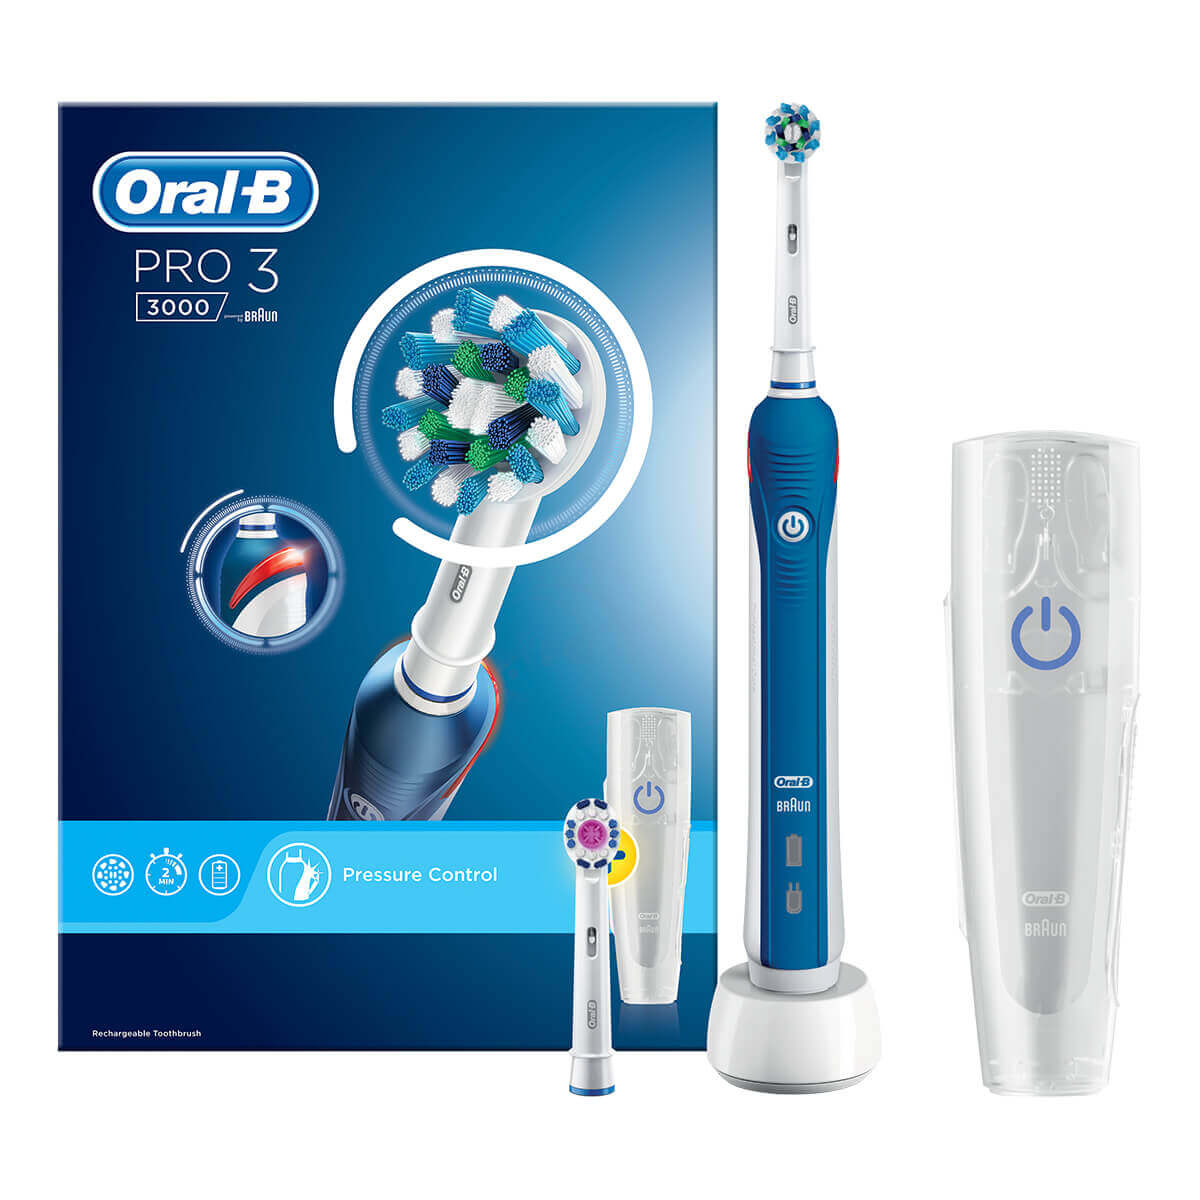 Oral-B Pro 3 3000 Electric Toothbrush